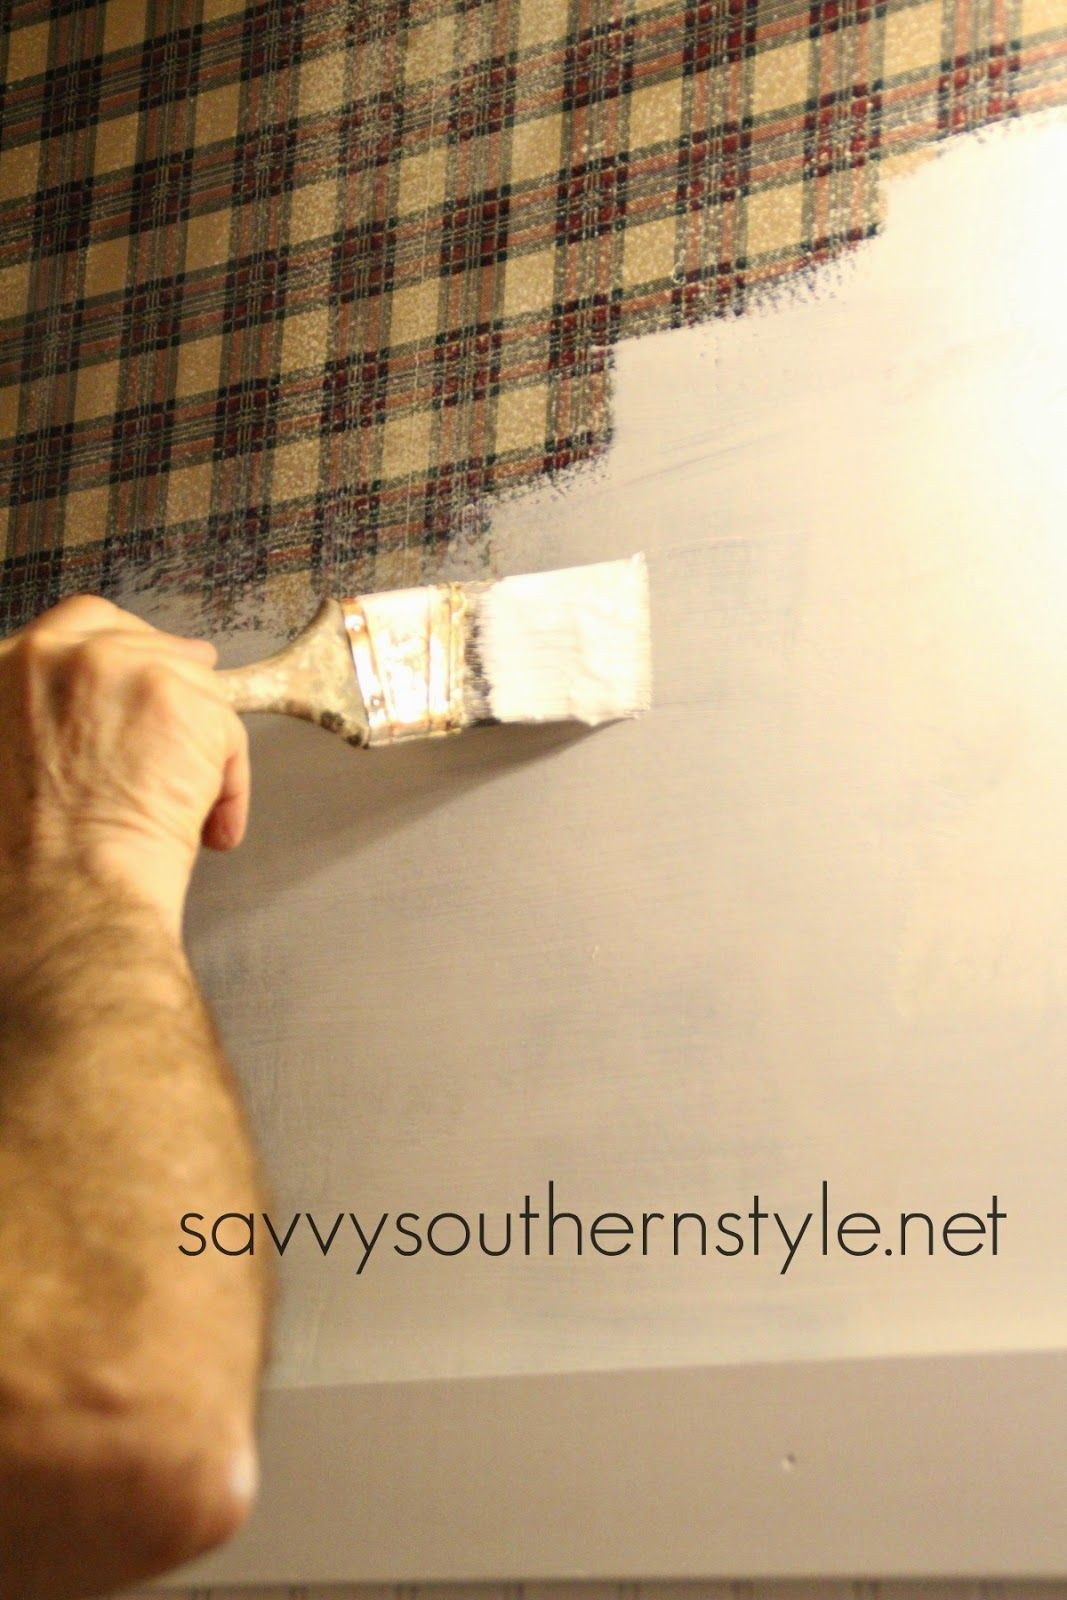 How To Paint Over Wallpaper In A Bathroom.How To Paint Over Wallpaper Ftm Painting Over Wallpaper